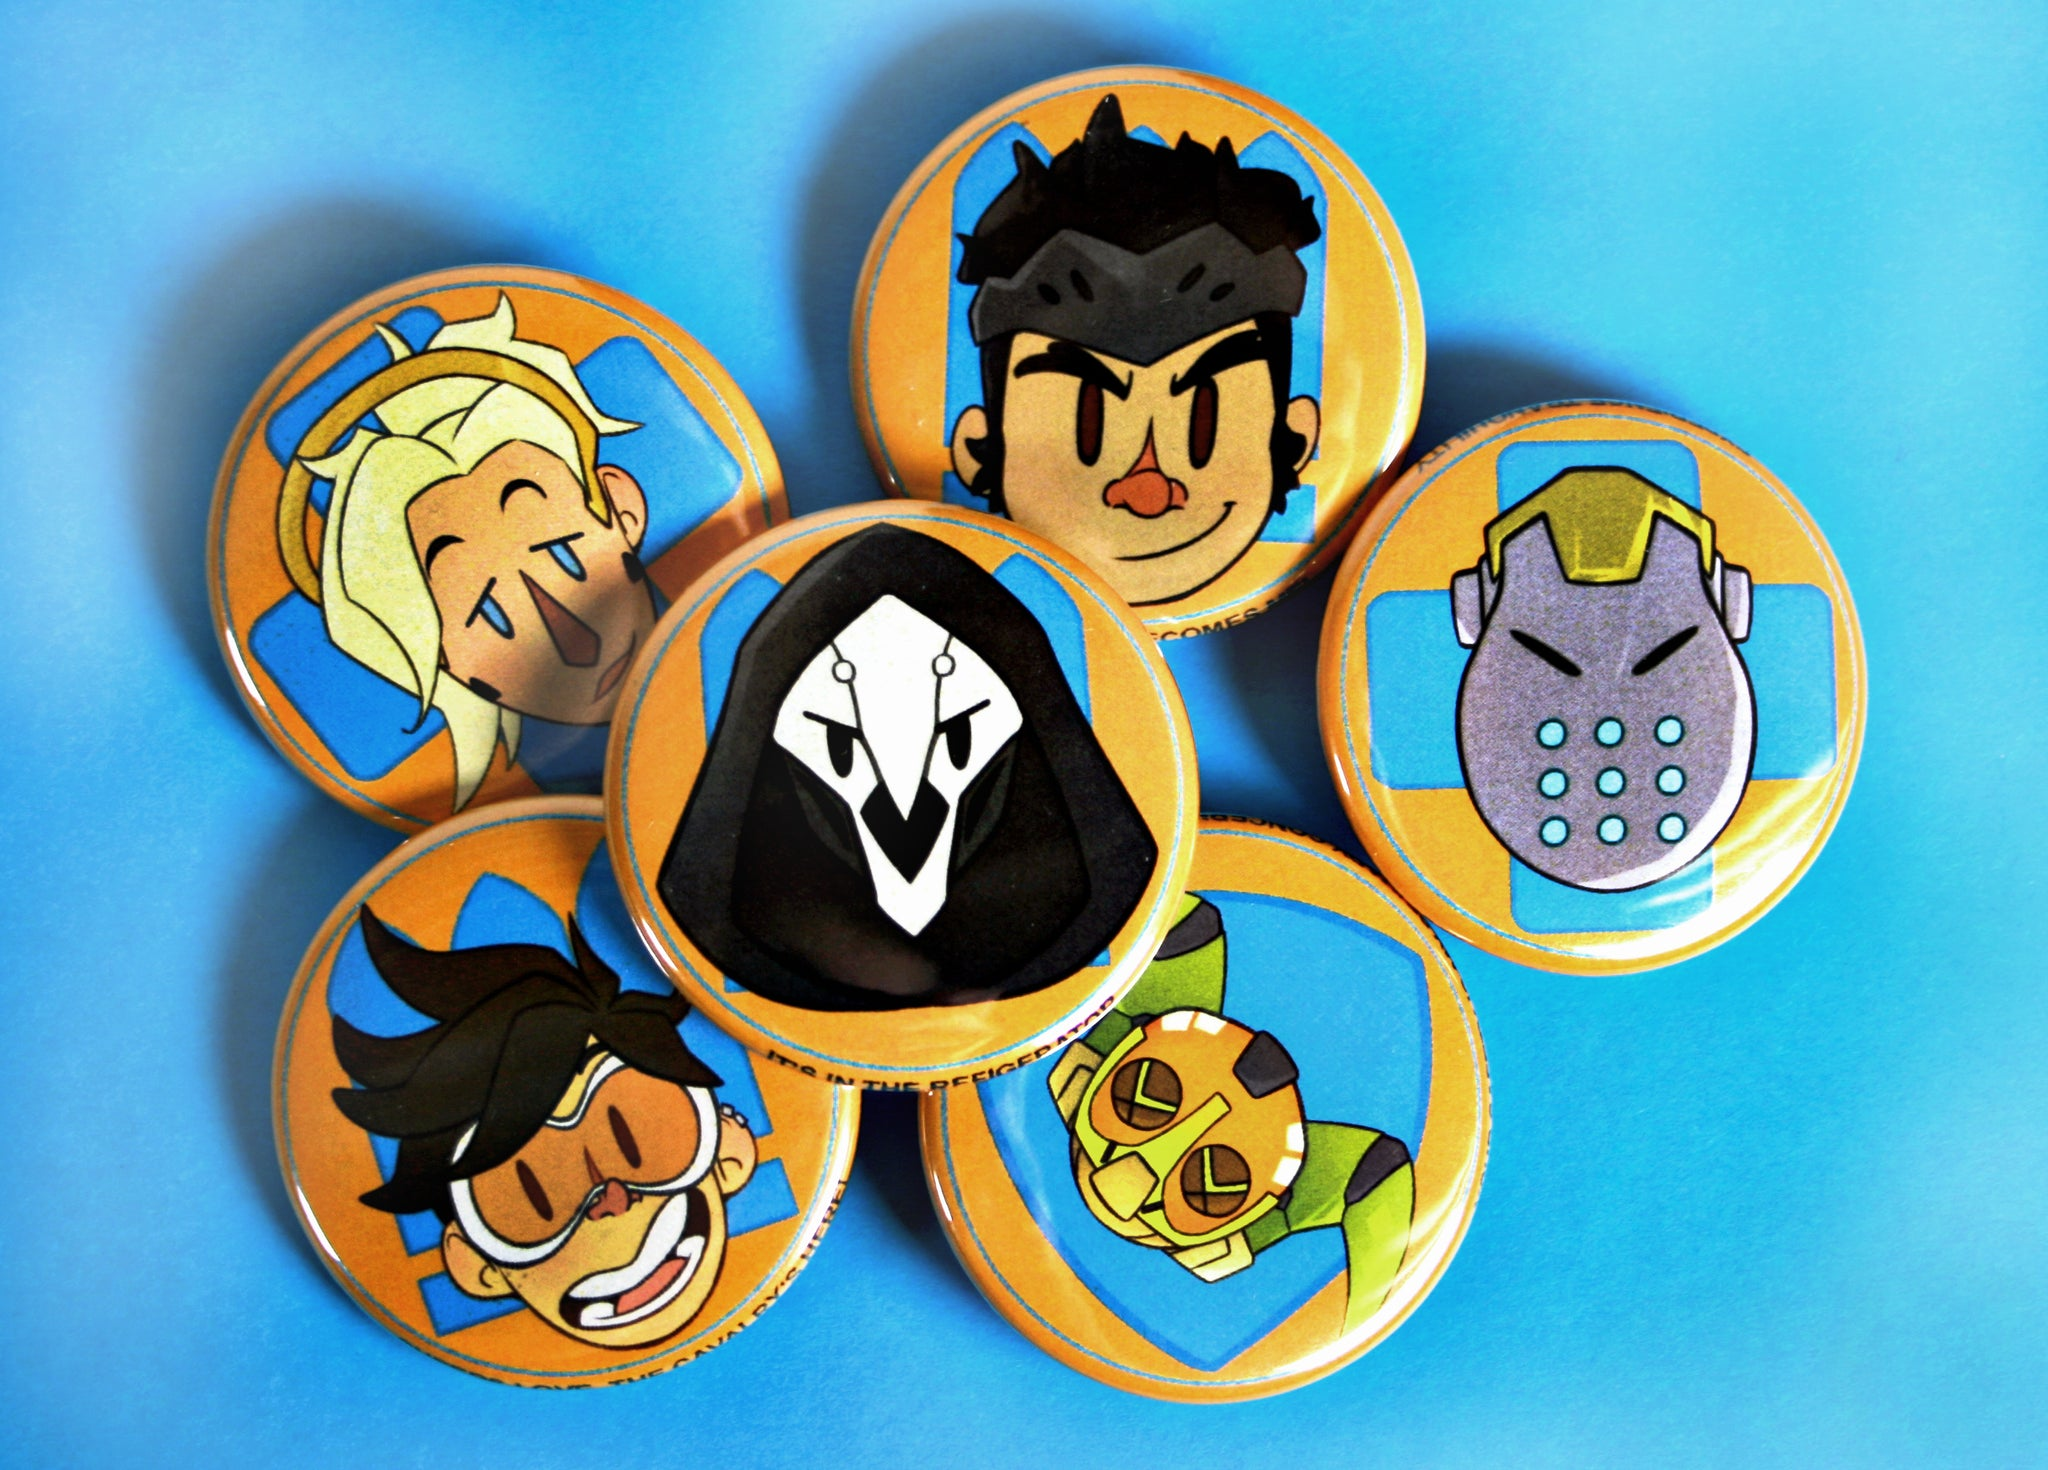 Northern-Gaming-Expo-Buttons-Overwatch